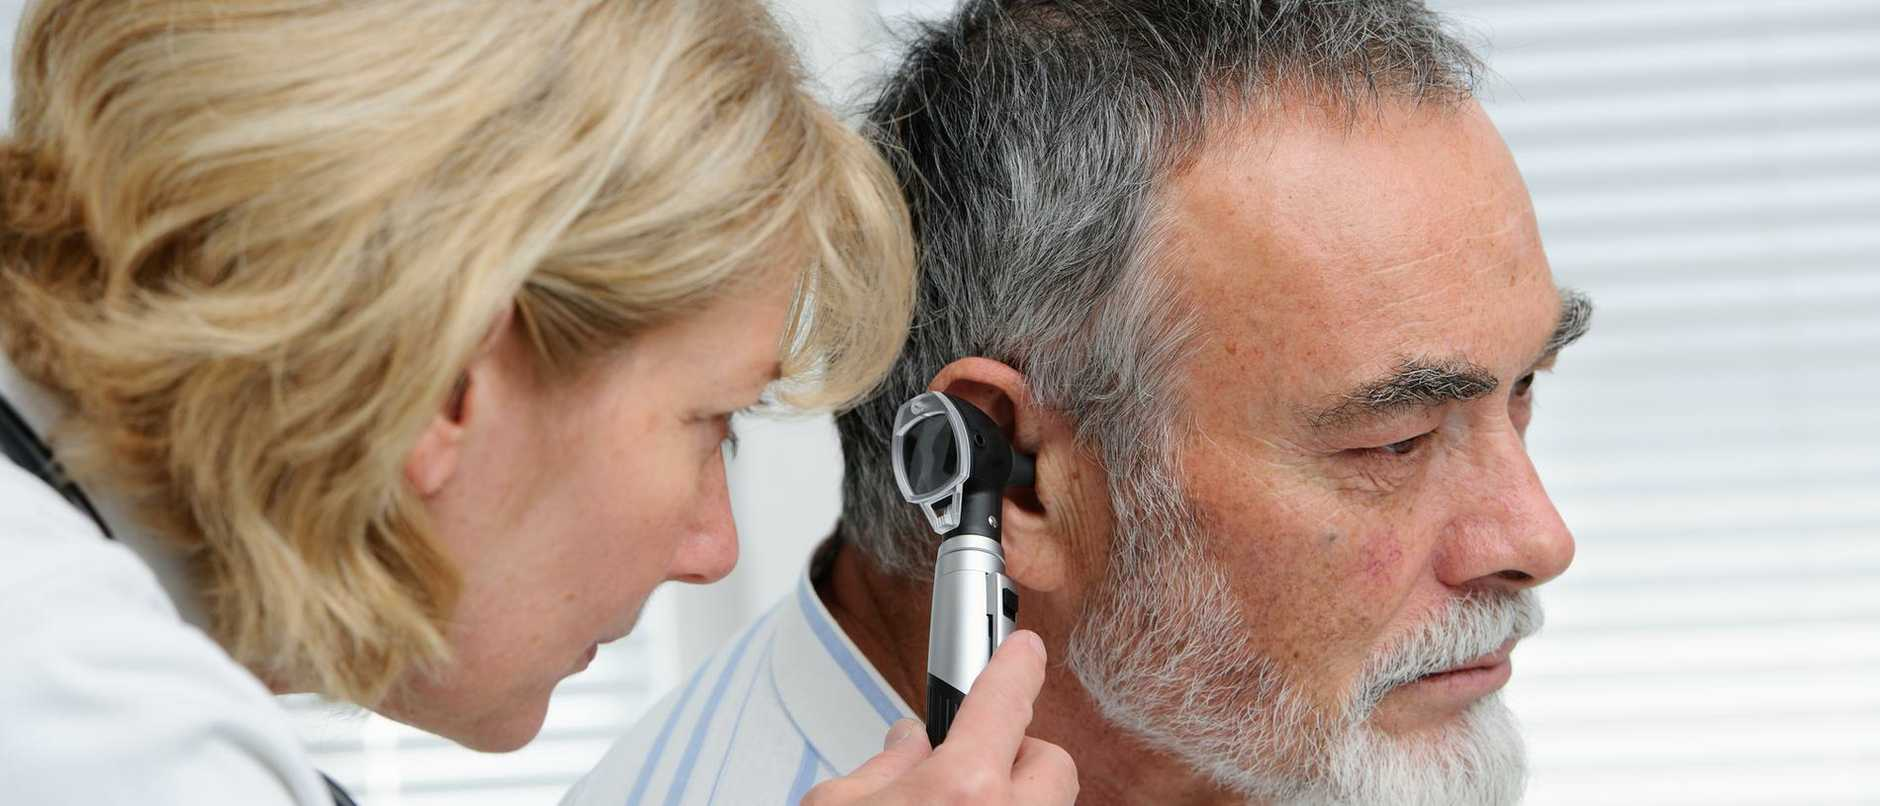 Melbourne researchers have found hearing aids could play a significant role in preventing dementia in old age. See how the device can increase brain capacity.